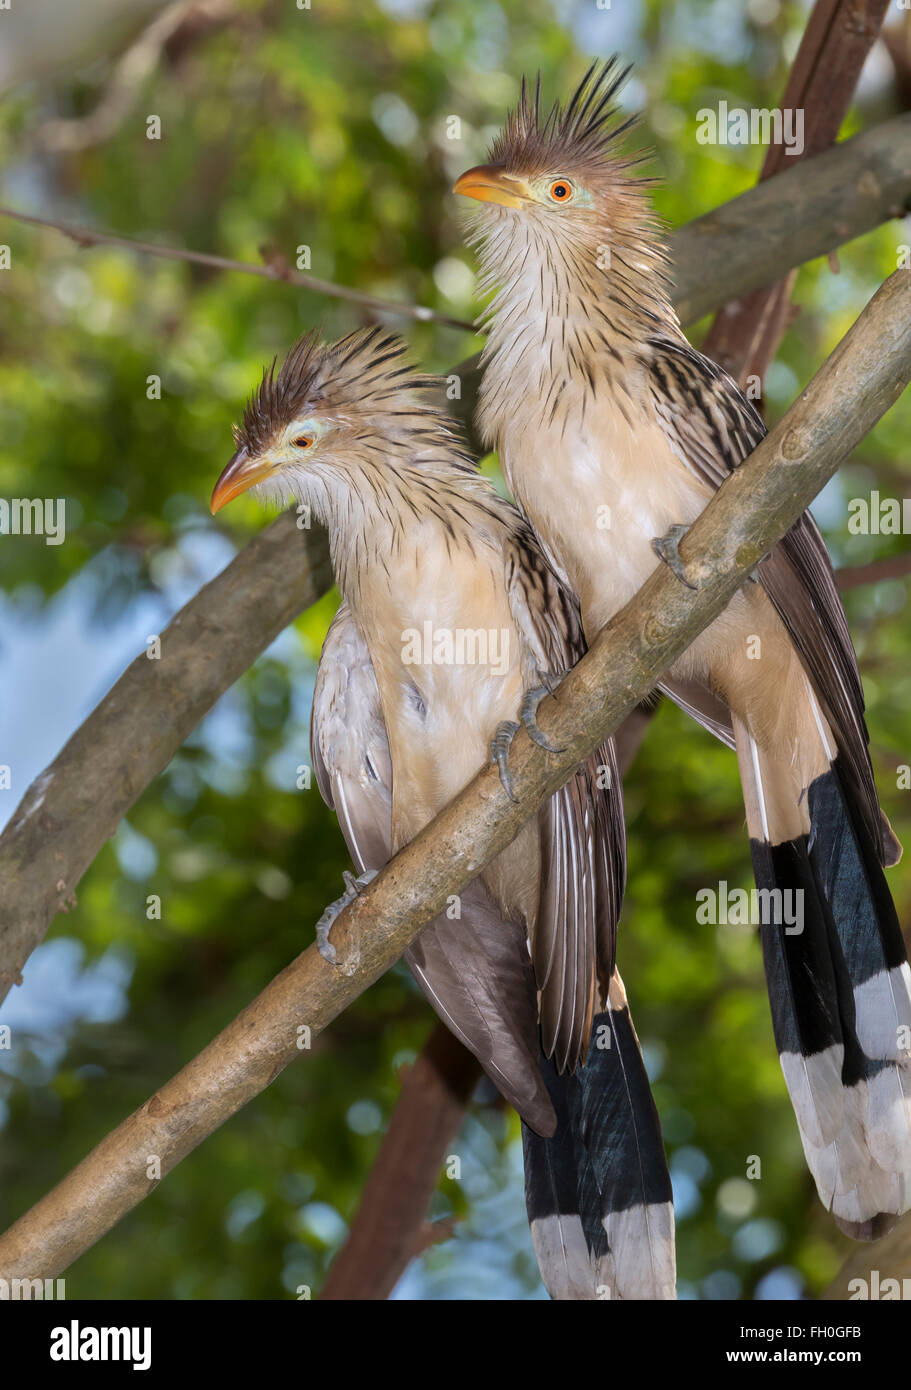 Guira cuckoos (Guira guira), captive (native to South America) - Stock Image